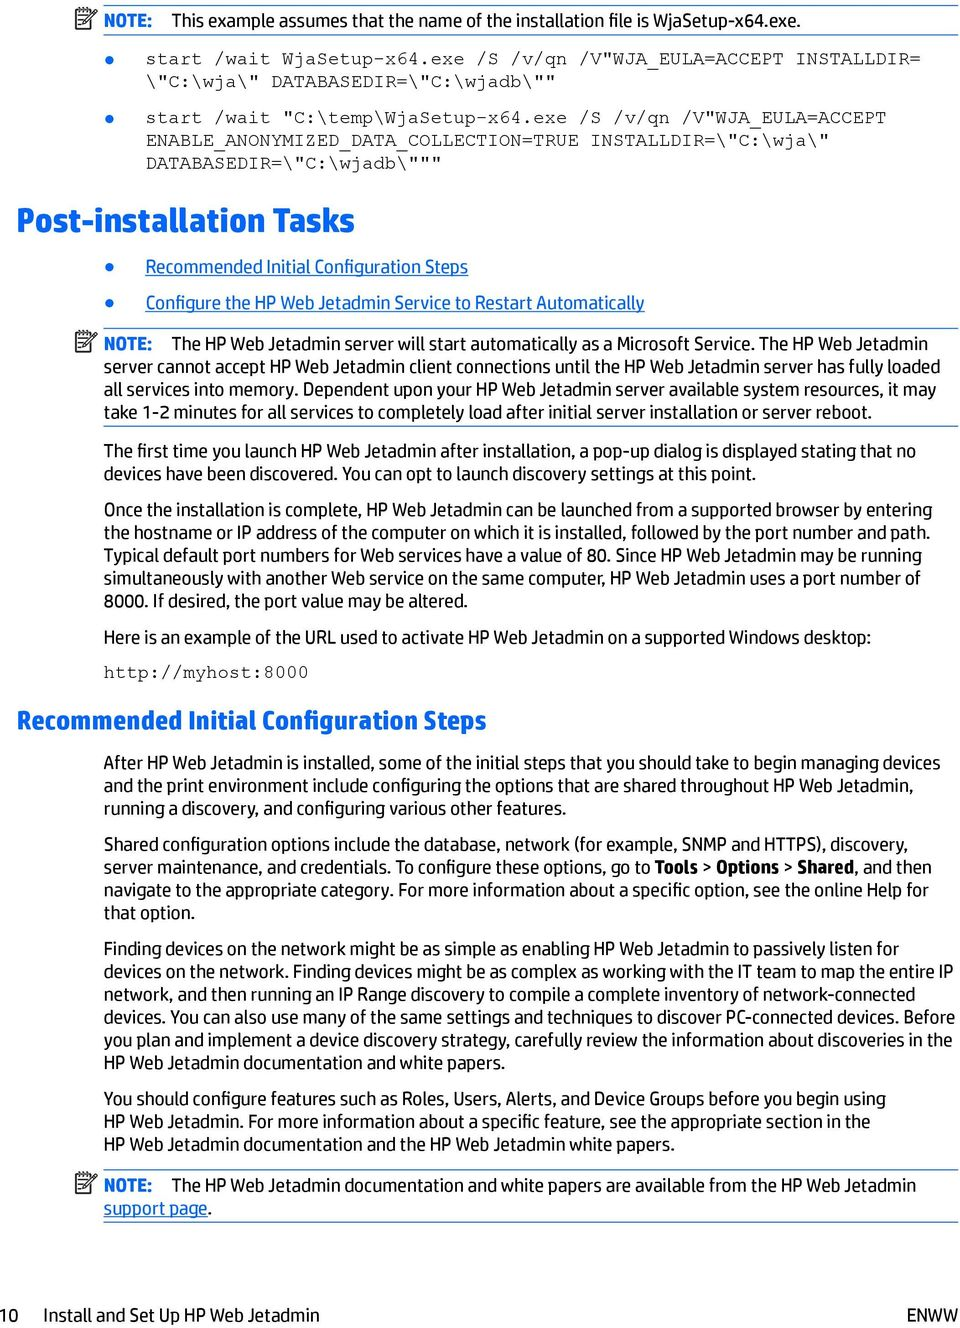 HP Web Jetadmin Installation and Setup Guide - PDF